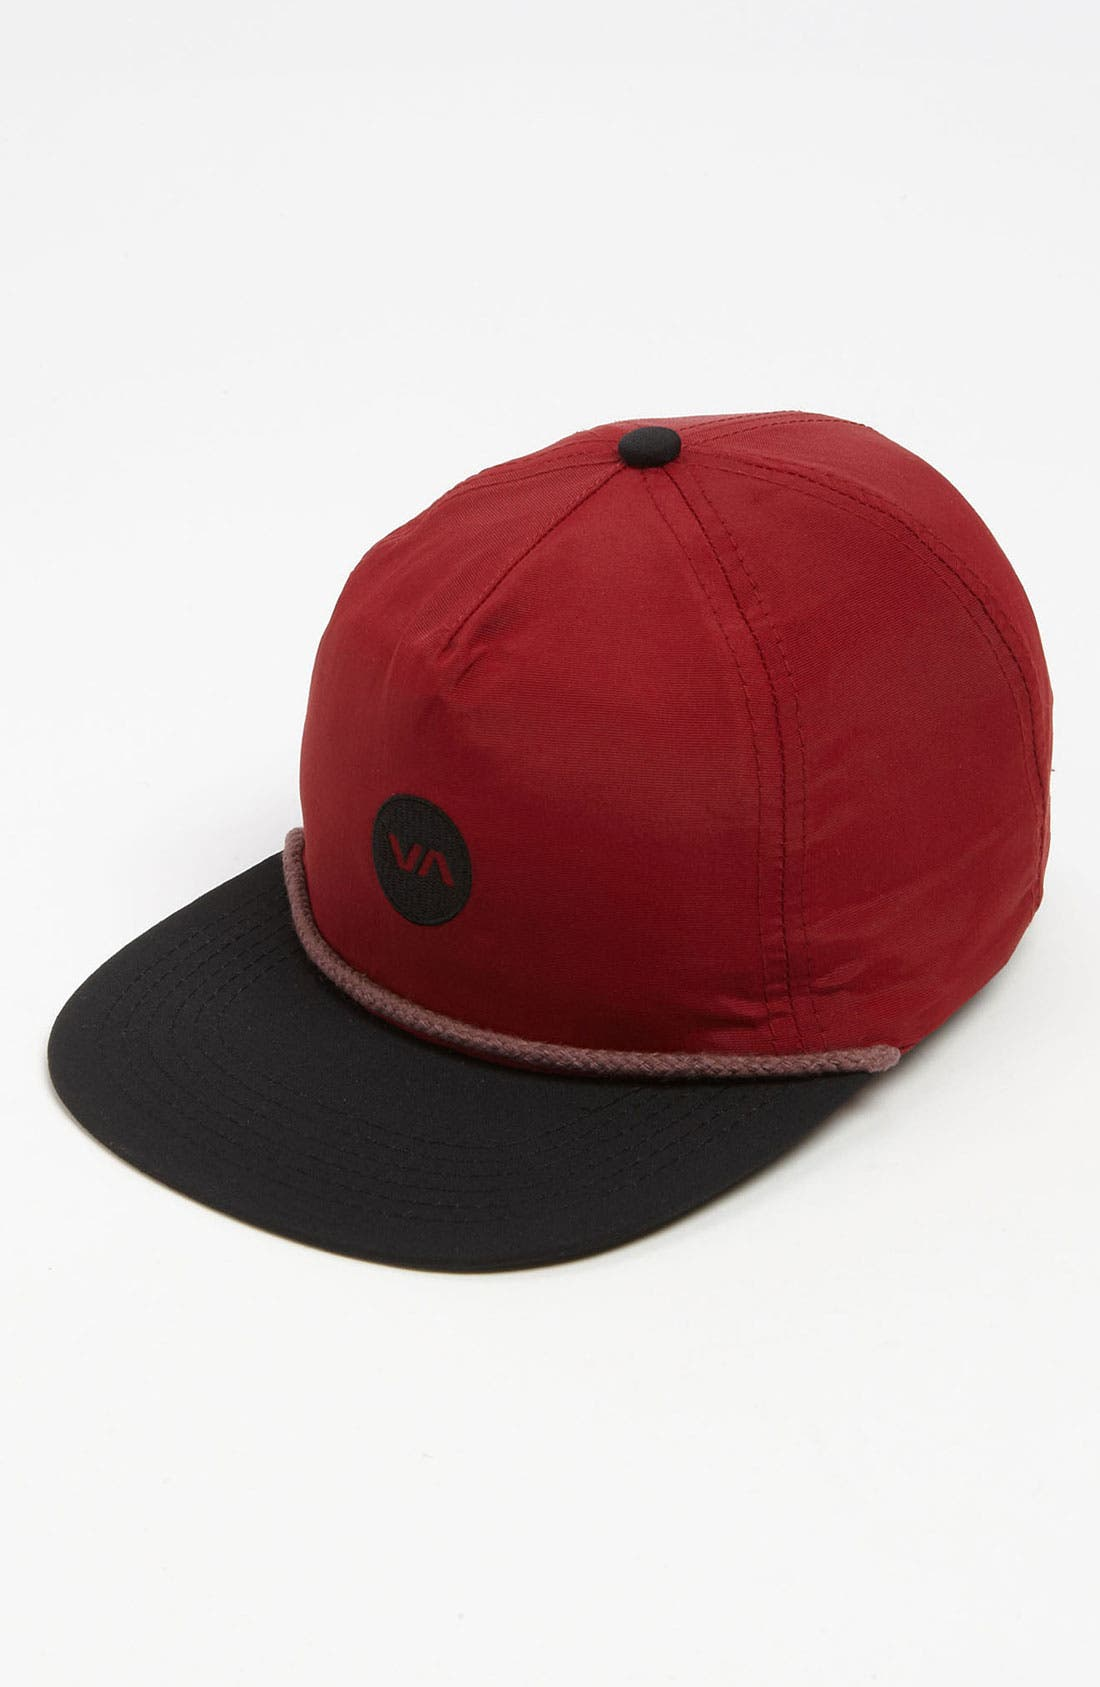 Alternate Image 1 Selected - RVCA 'Dot' Snapback Baseball Cap